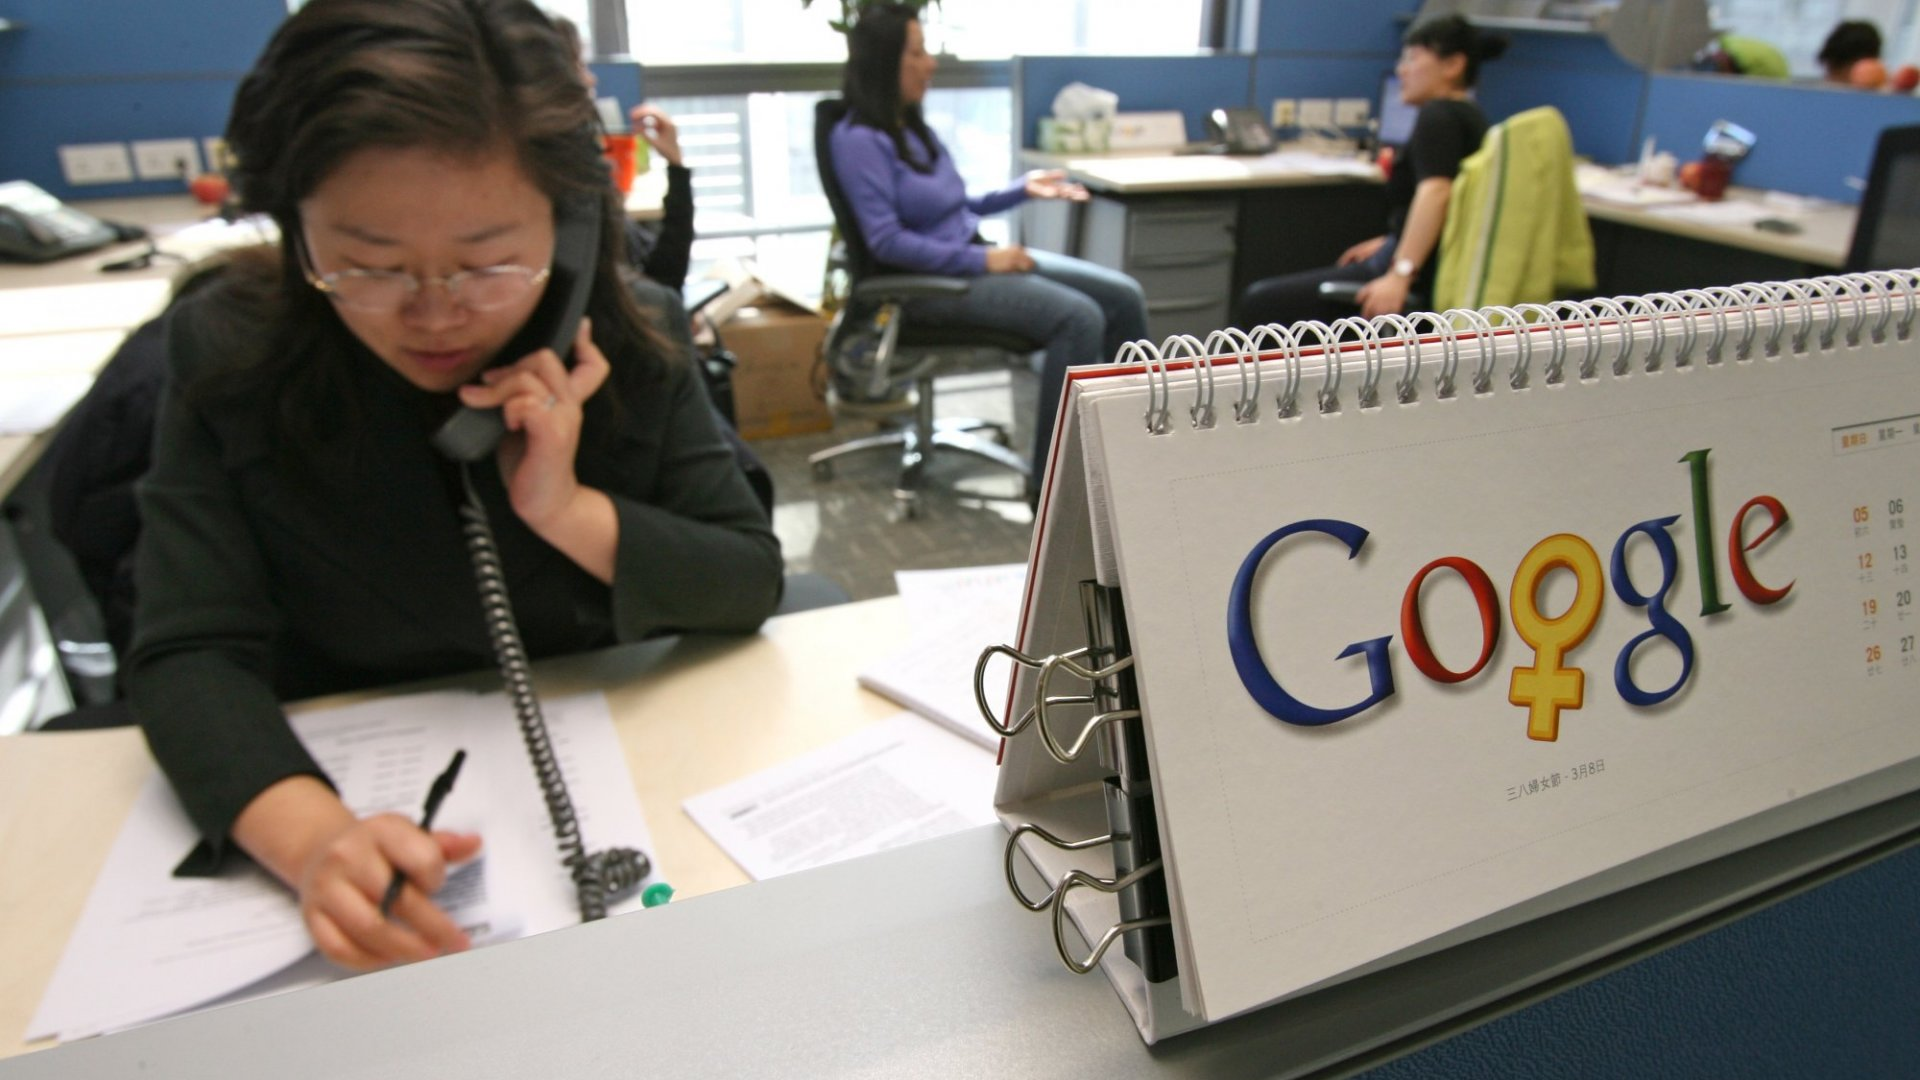 200 Google Employees Are Organizing aWalkout. Here's the Culture Lesson You Can't Afford to Miss